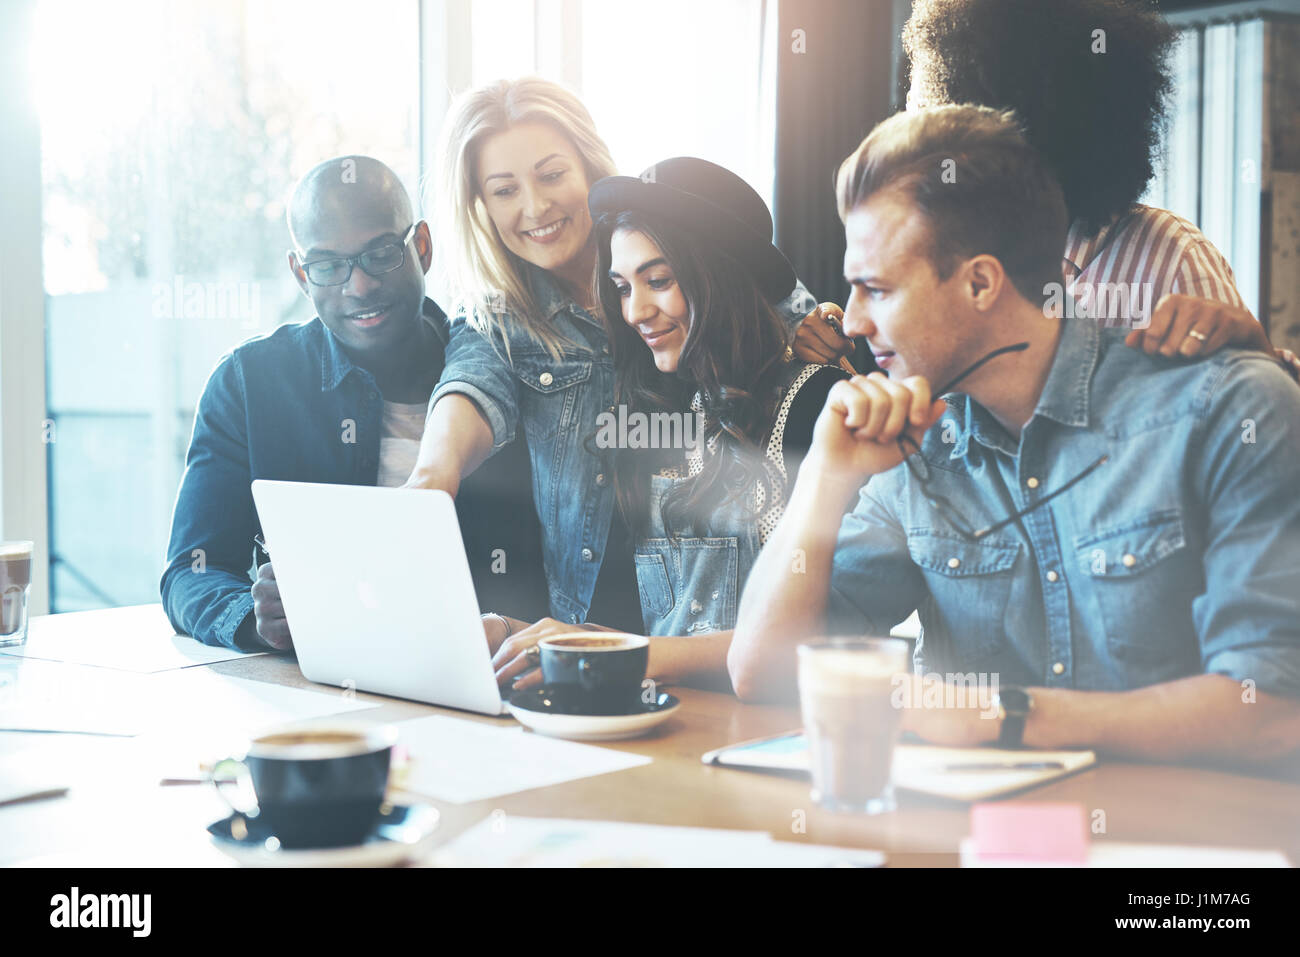 Woman showing coworkers something on laptop computer as they gather around a conference table Stock Photo